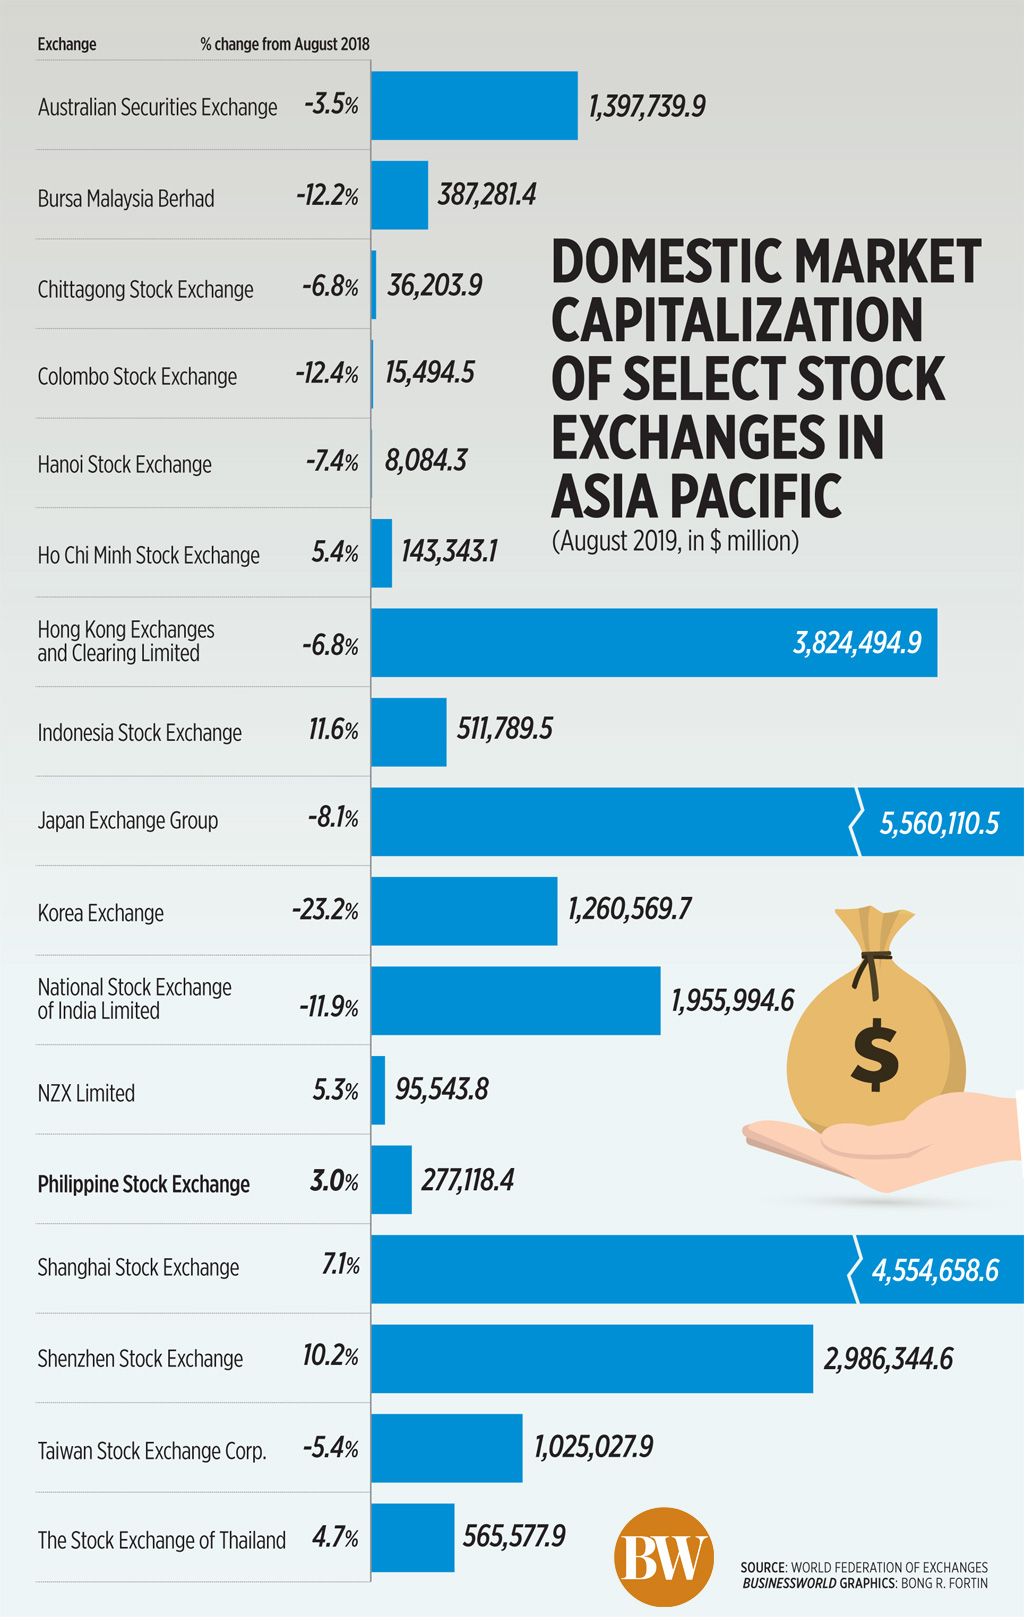 Domestic market capitalization of select stock exchanges in Asia Pacific (August 2019)